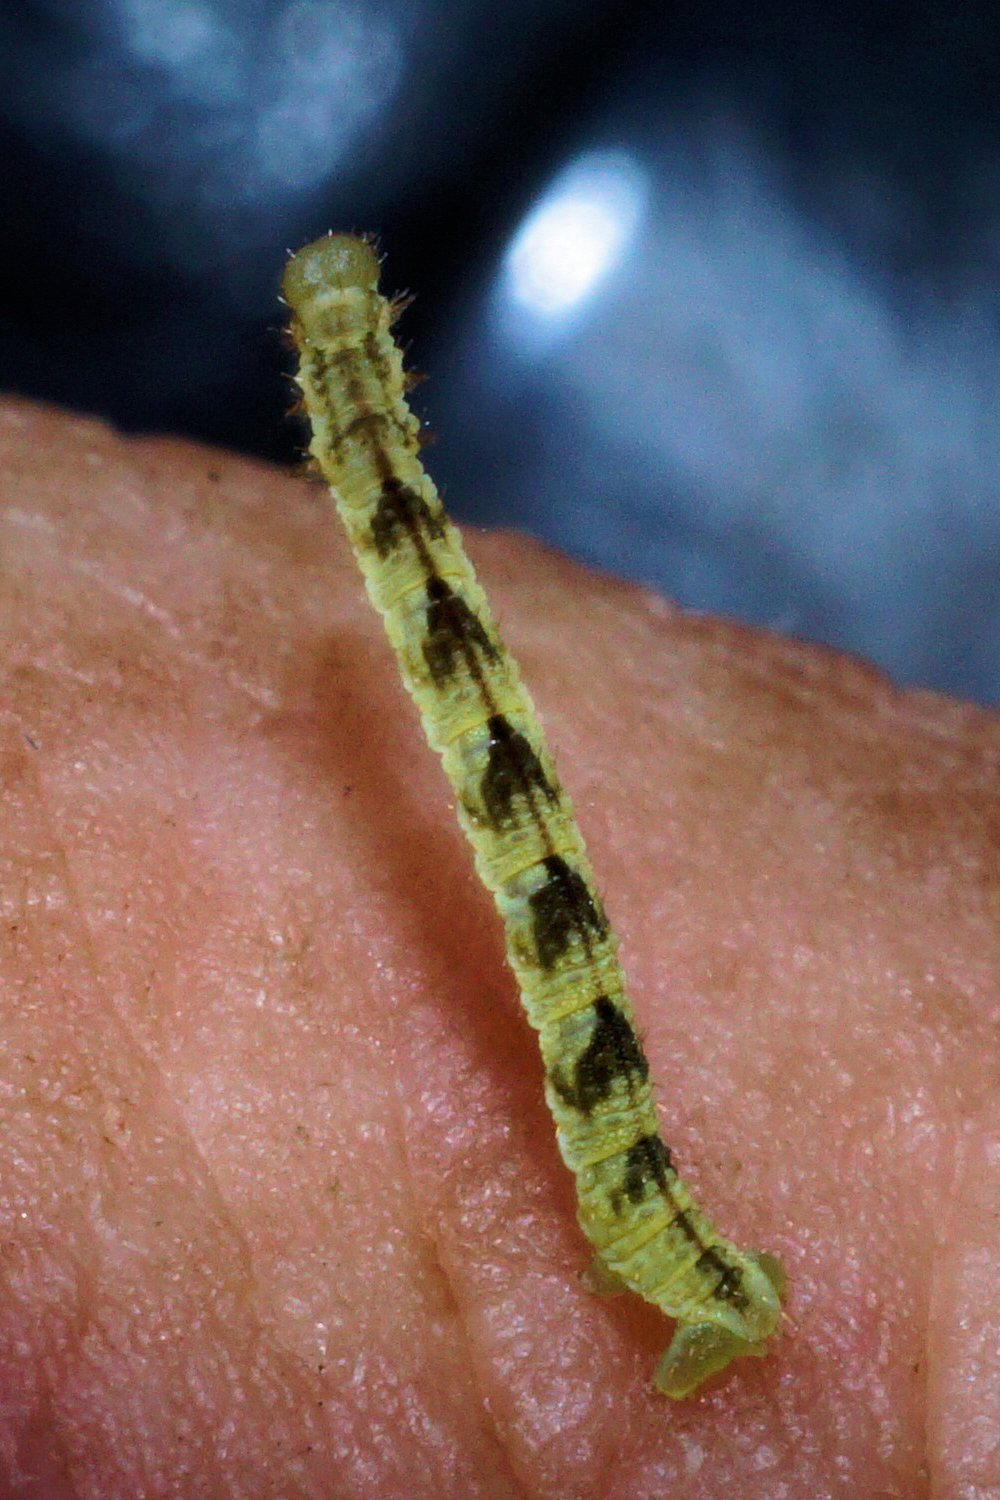 19 june 2015 common pug u2013 a type of inch worm bill u0027s botanical